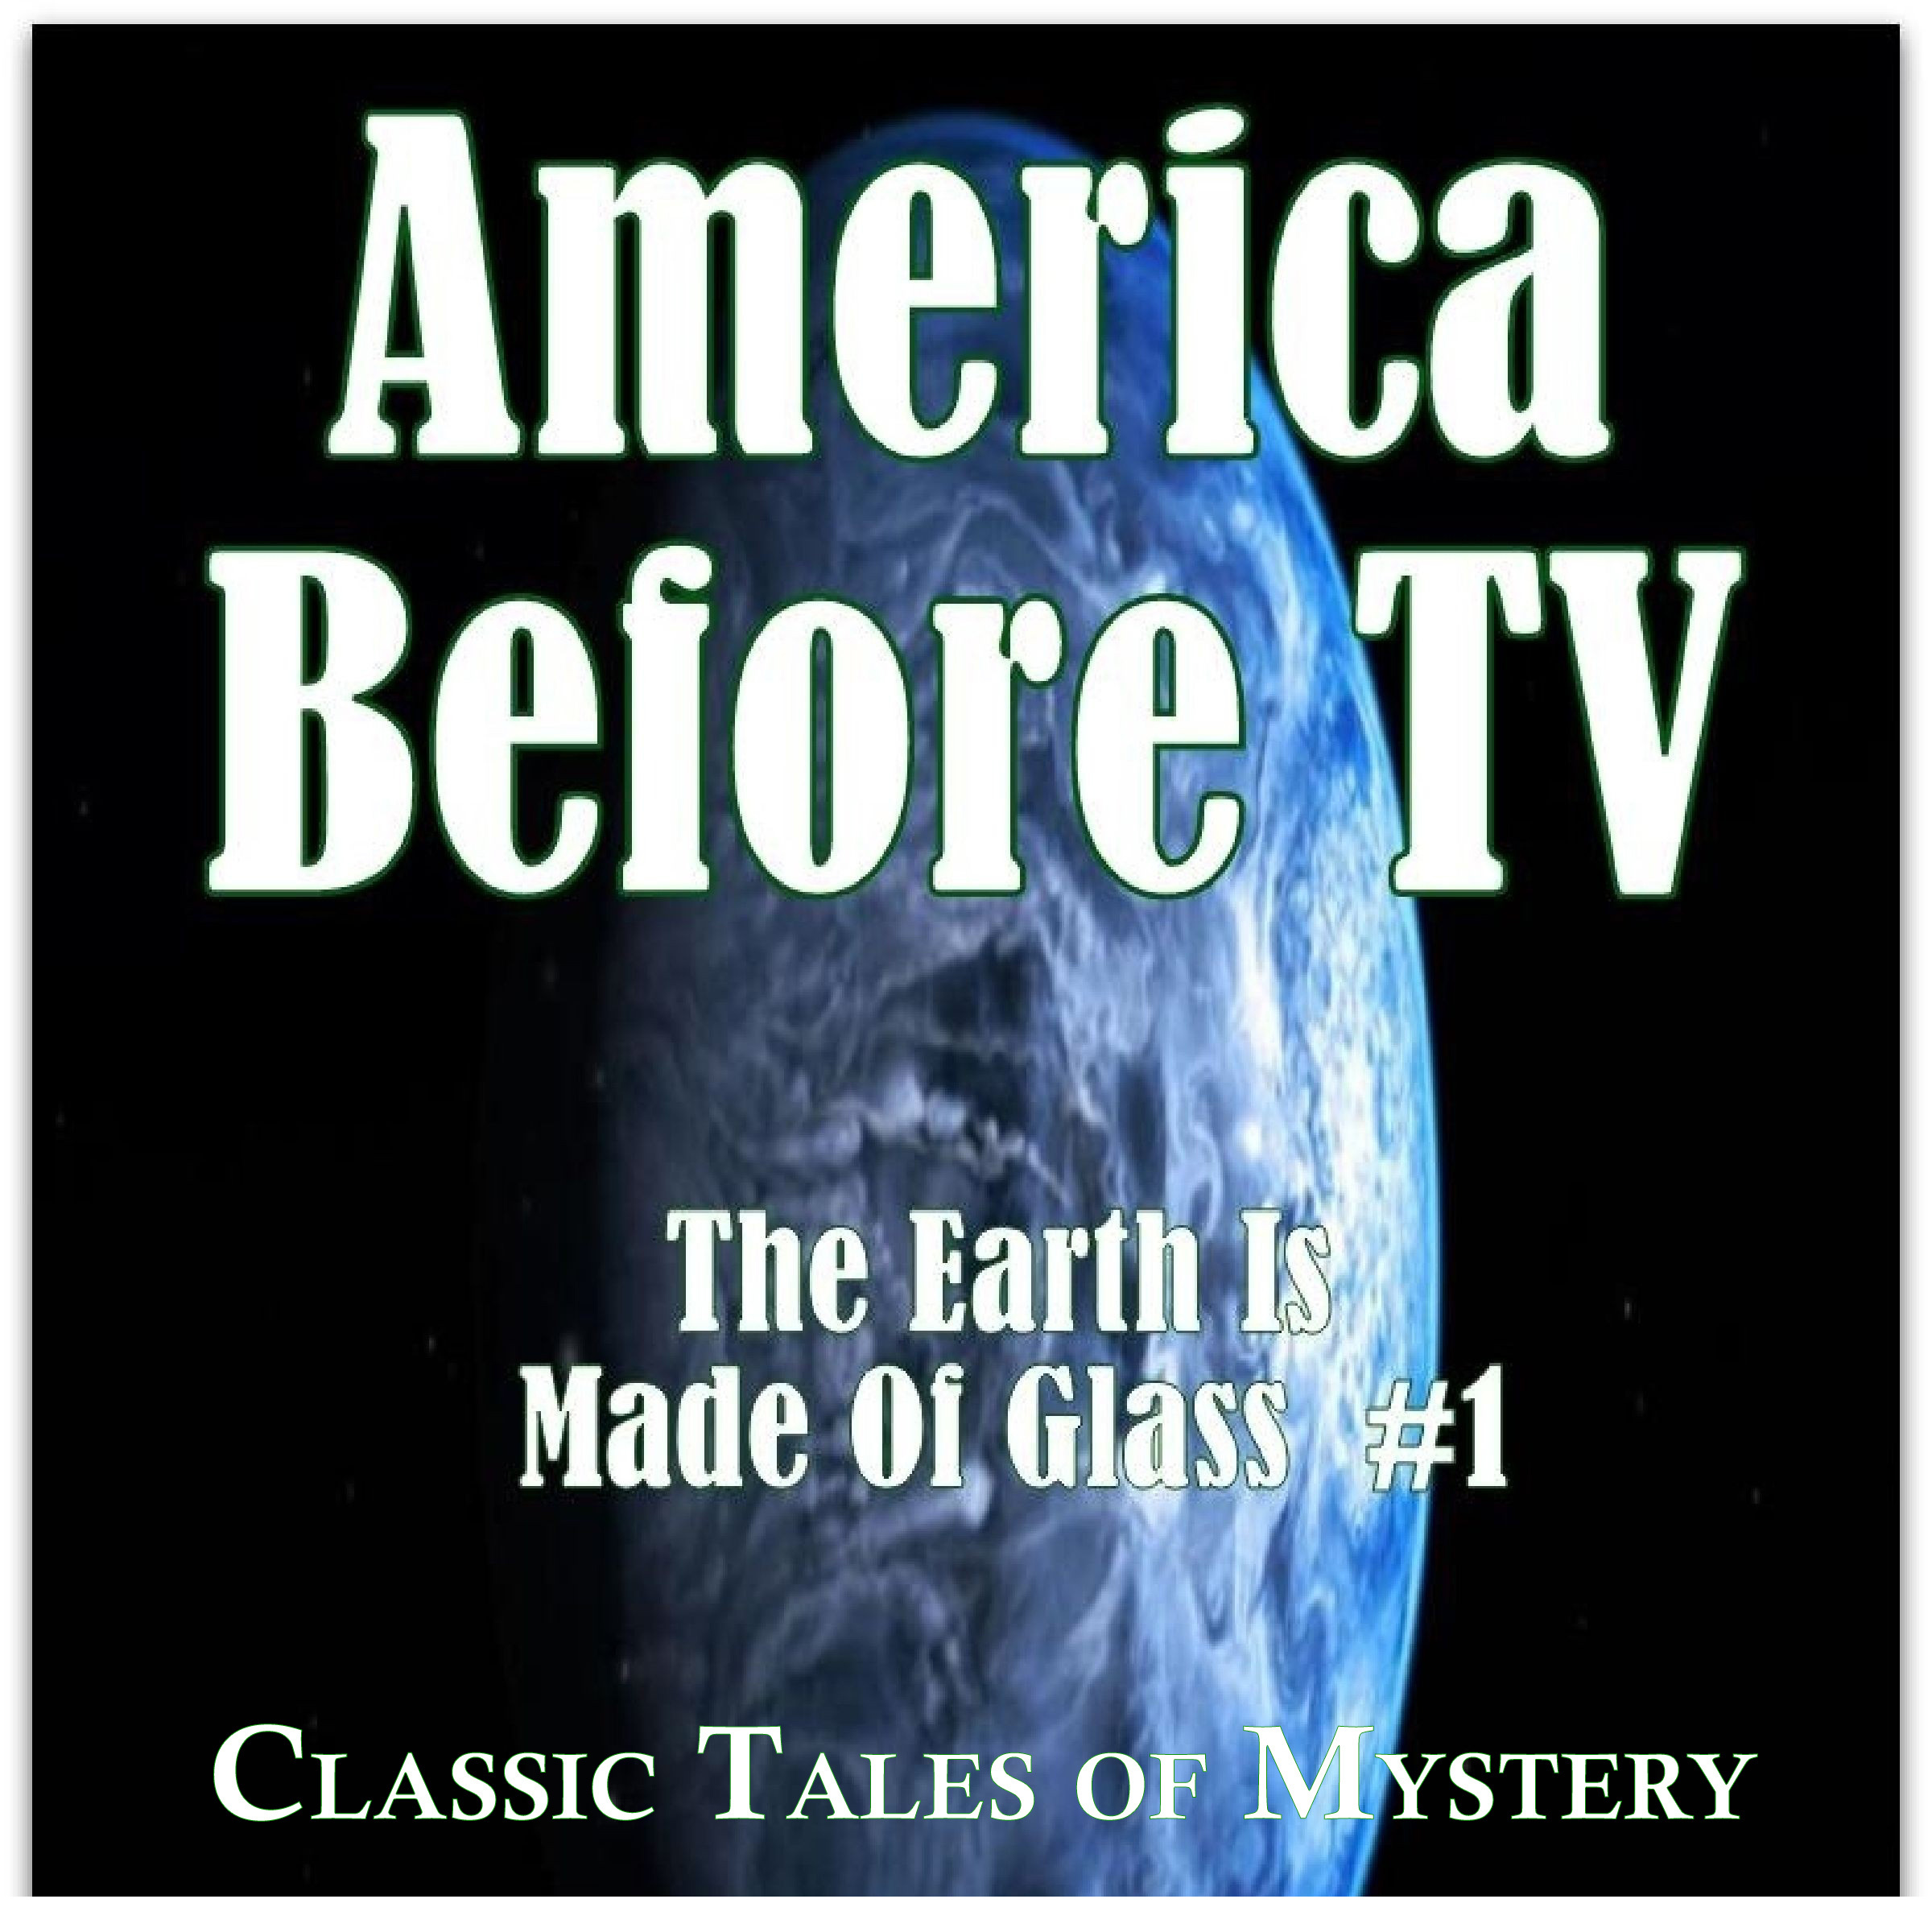 Printable America Before TV - The Earth Is Made Of Glass  #1 Audiobook Cover Art